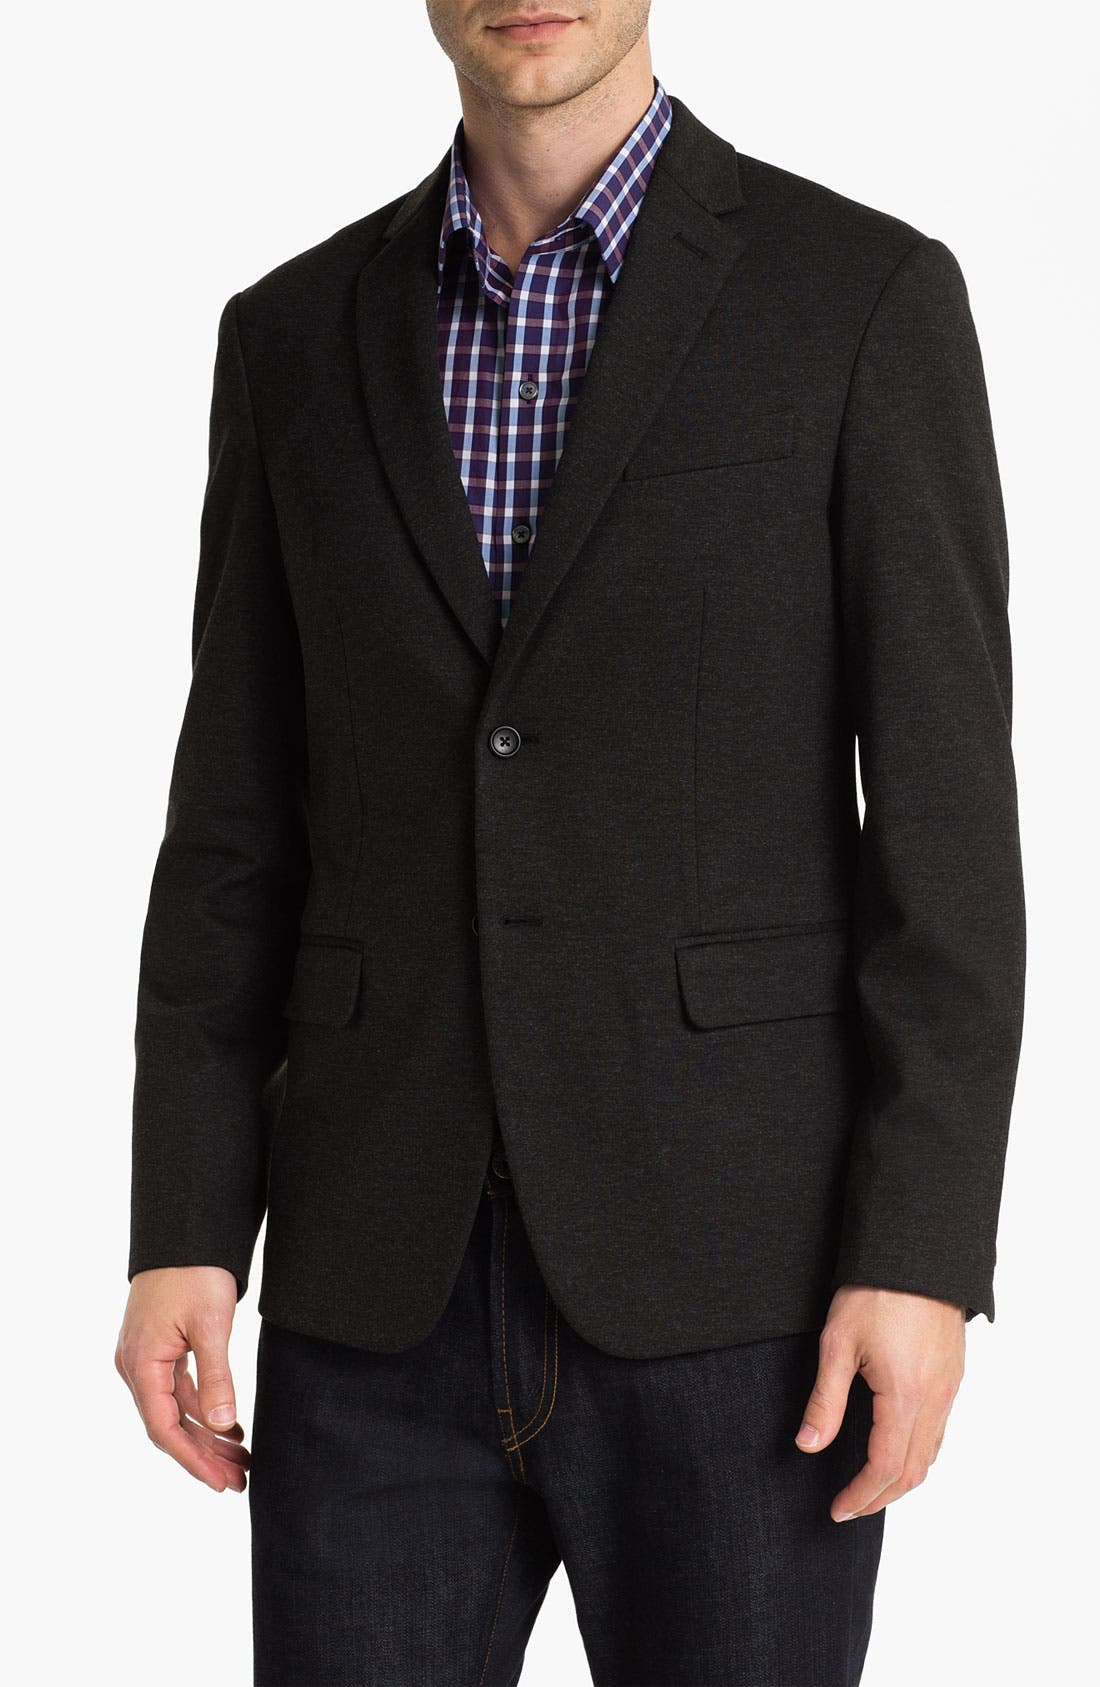 Alternate Image 1 Selected - Calibrate 'Endell' Knit Sportcoat